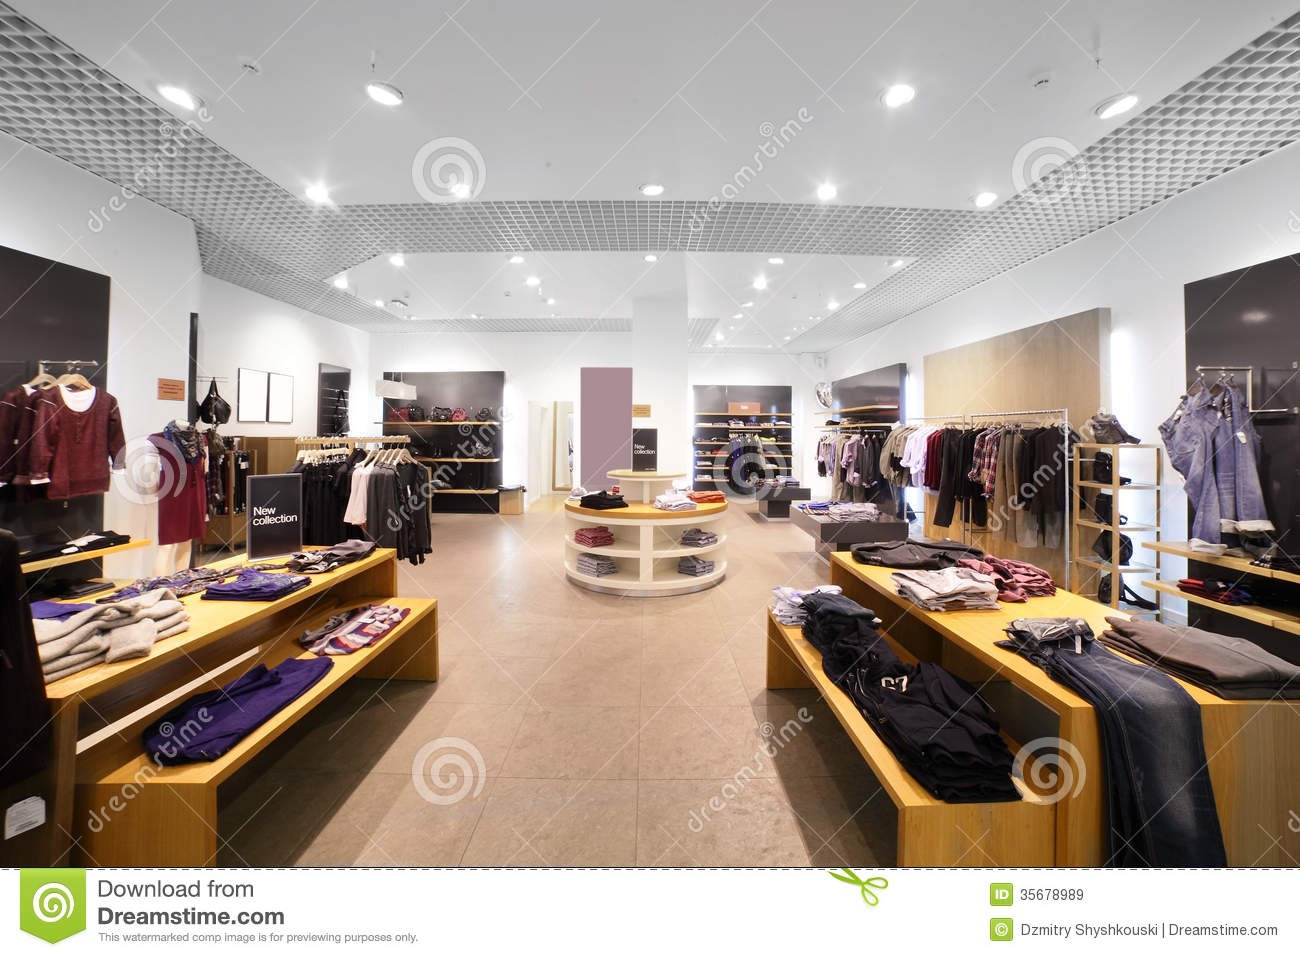 Royalty Free Stock Images: European clothing store with huge